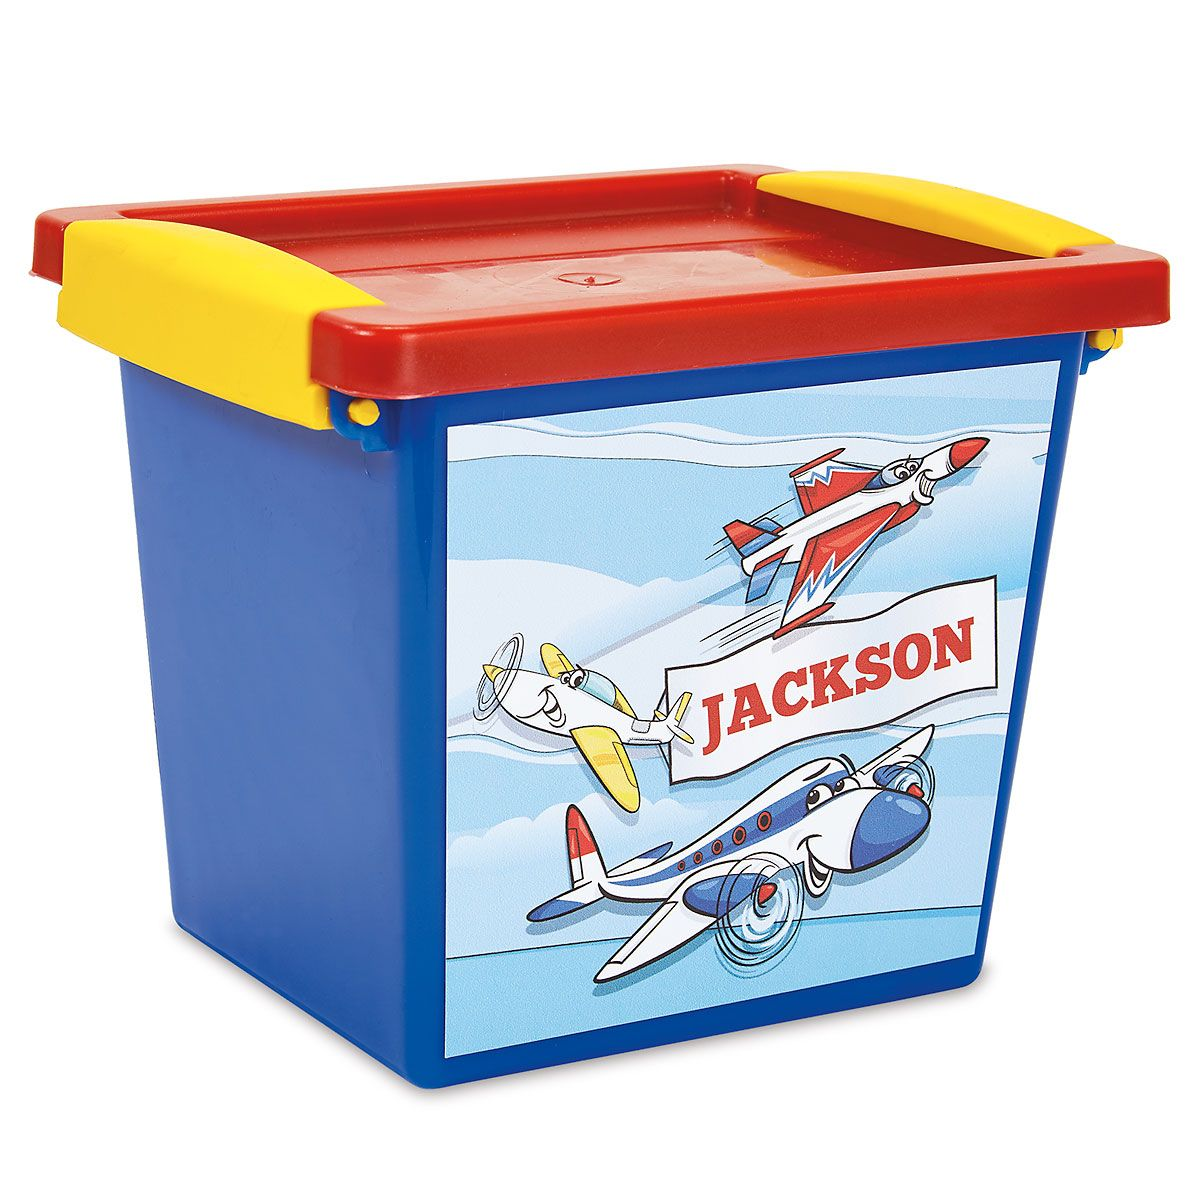 Planes in a Personalized Case